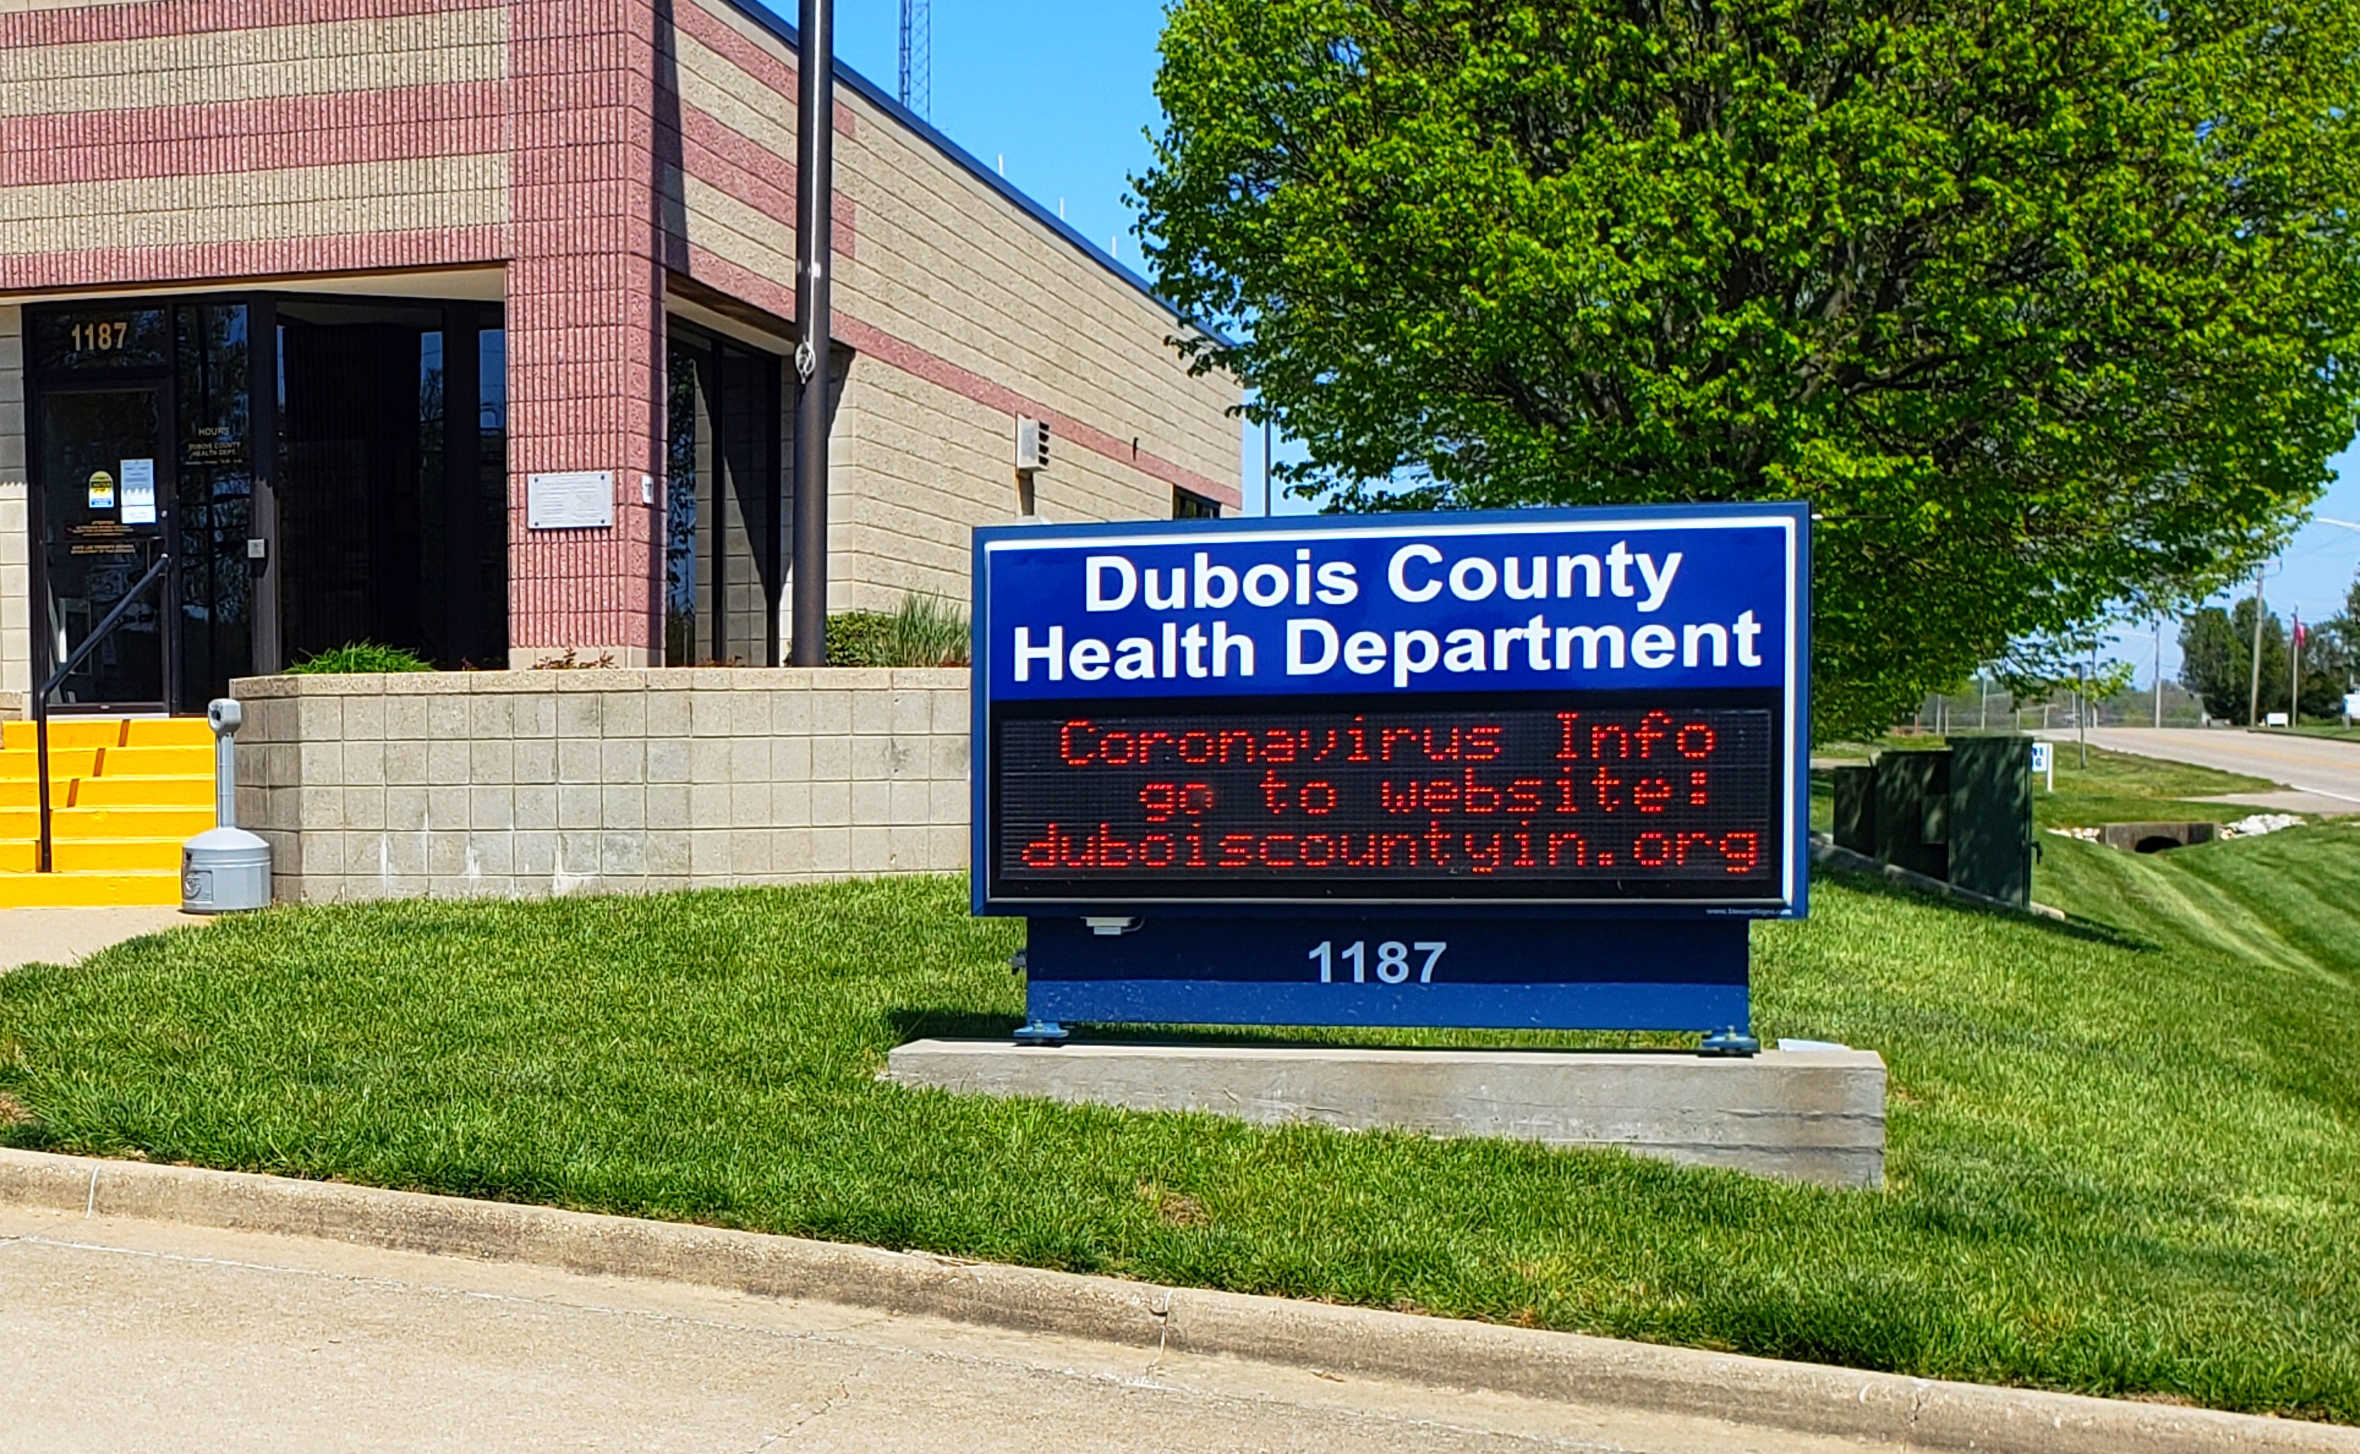 12 New COVID-19 Cases Reported in Dubois County Friday, Ending a Rough Week For the Area